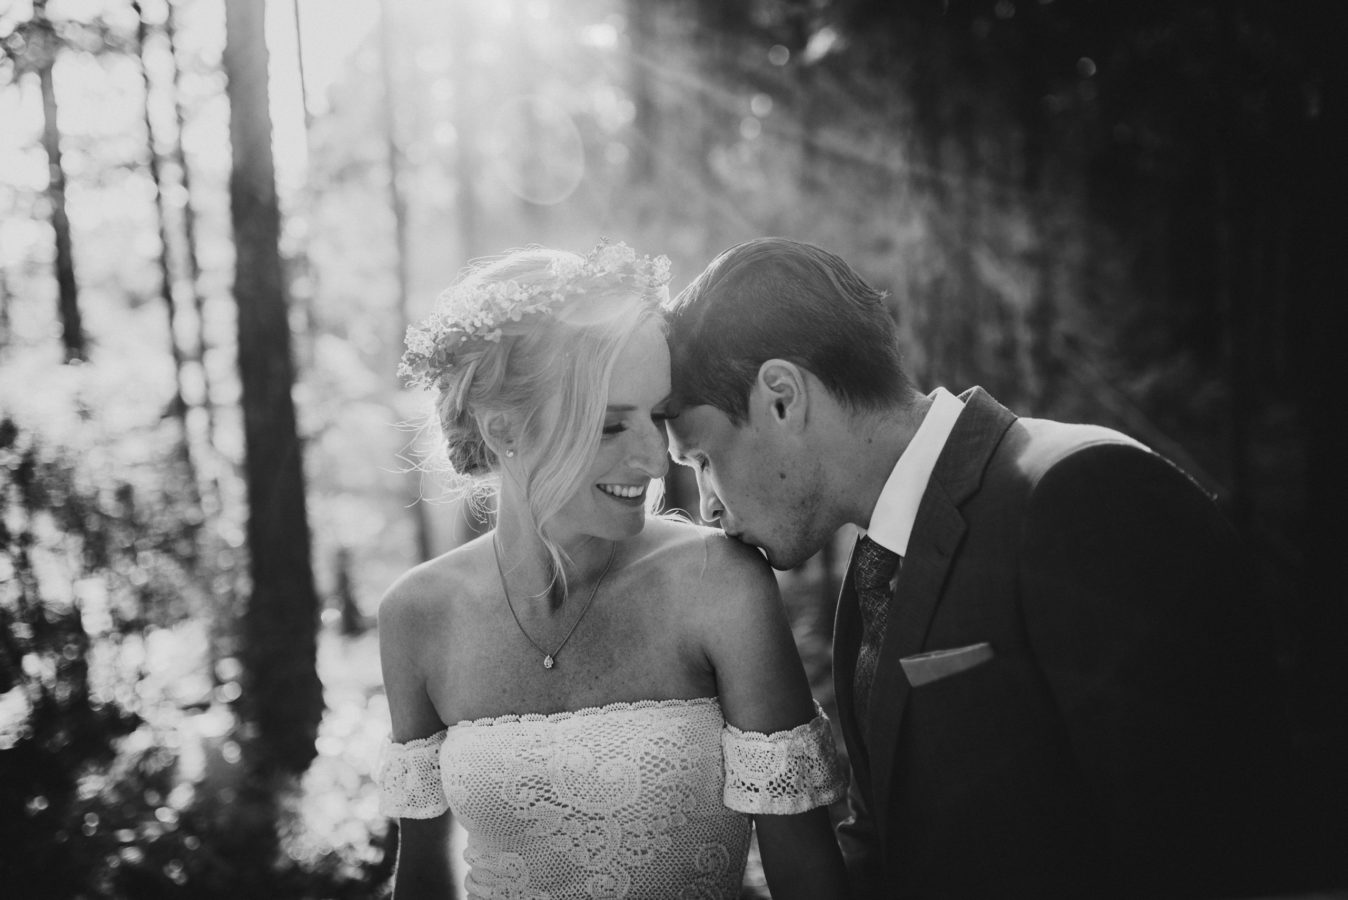 groom kissing his bride's shoulder in the sunlit forest on their wedding day